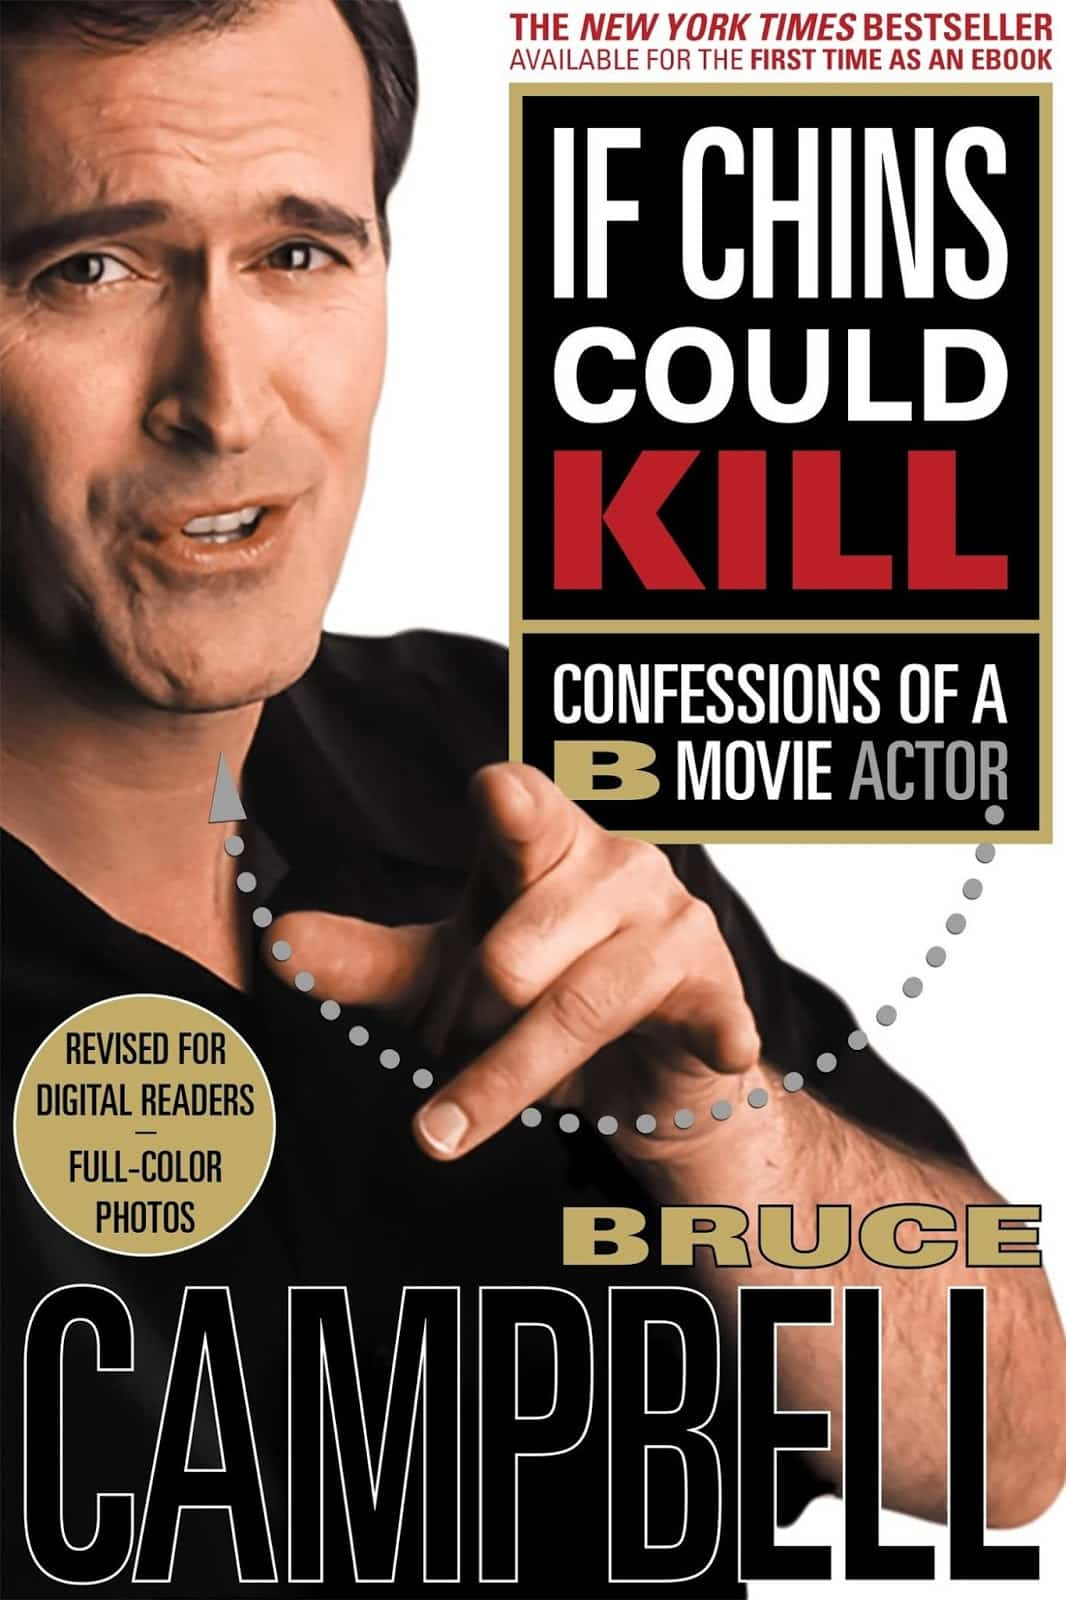 If Chins Could Kill: Confessions of a B Movie Actor – biography